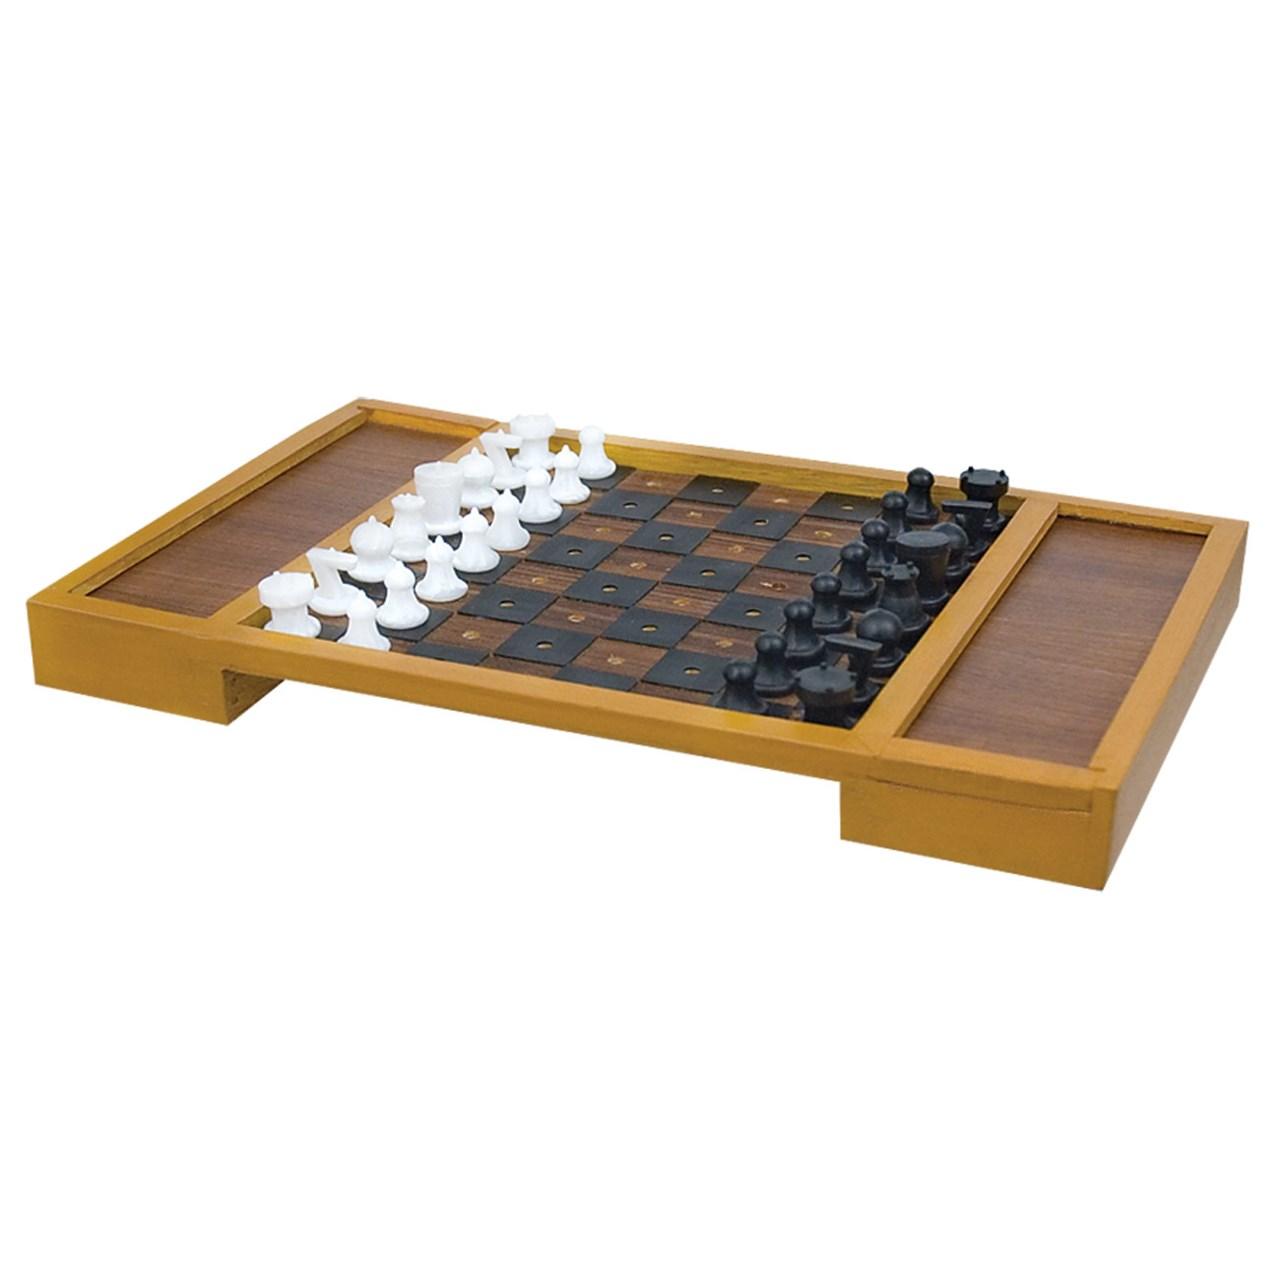 Merveilleux Large Table Top Chess Set For The Blind Or Those With Low Vision